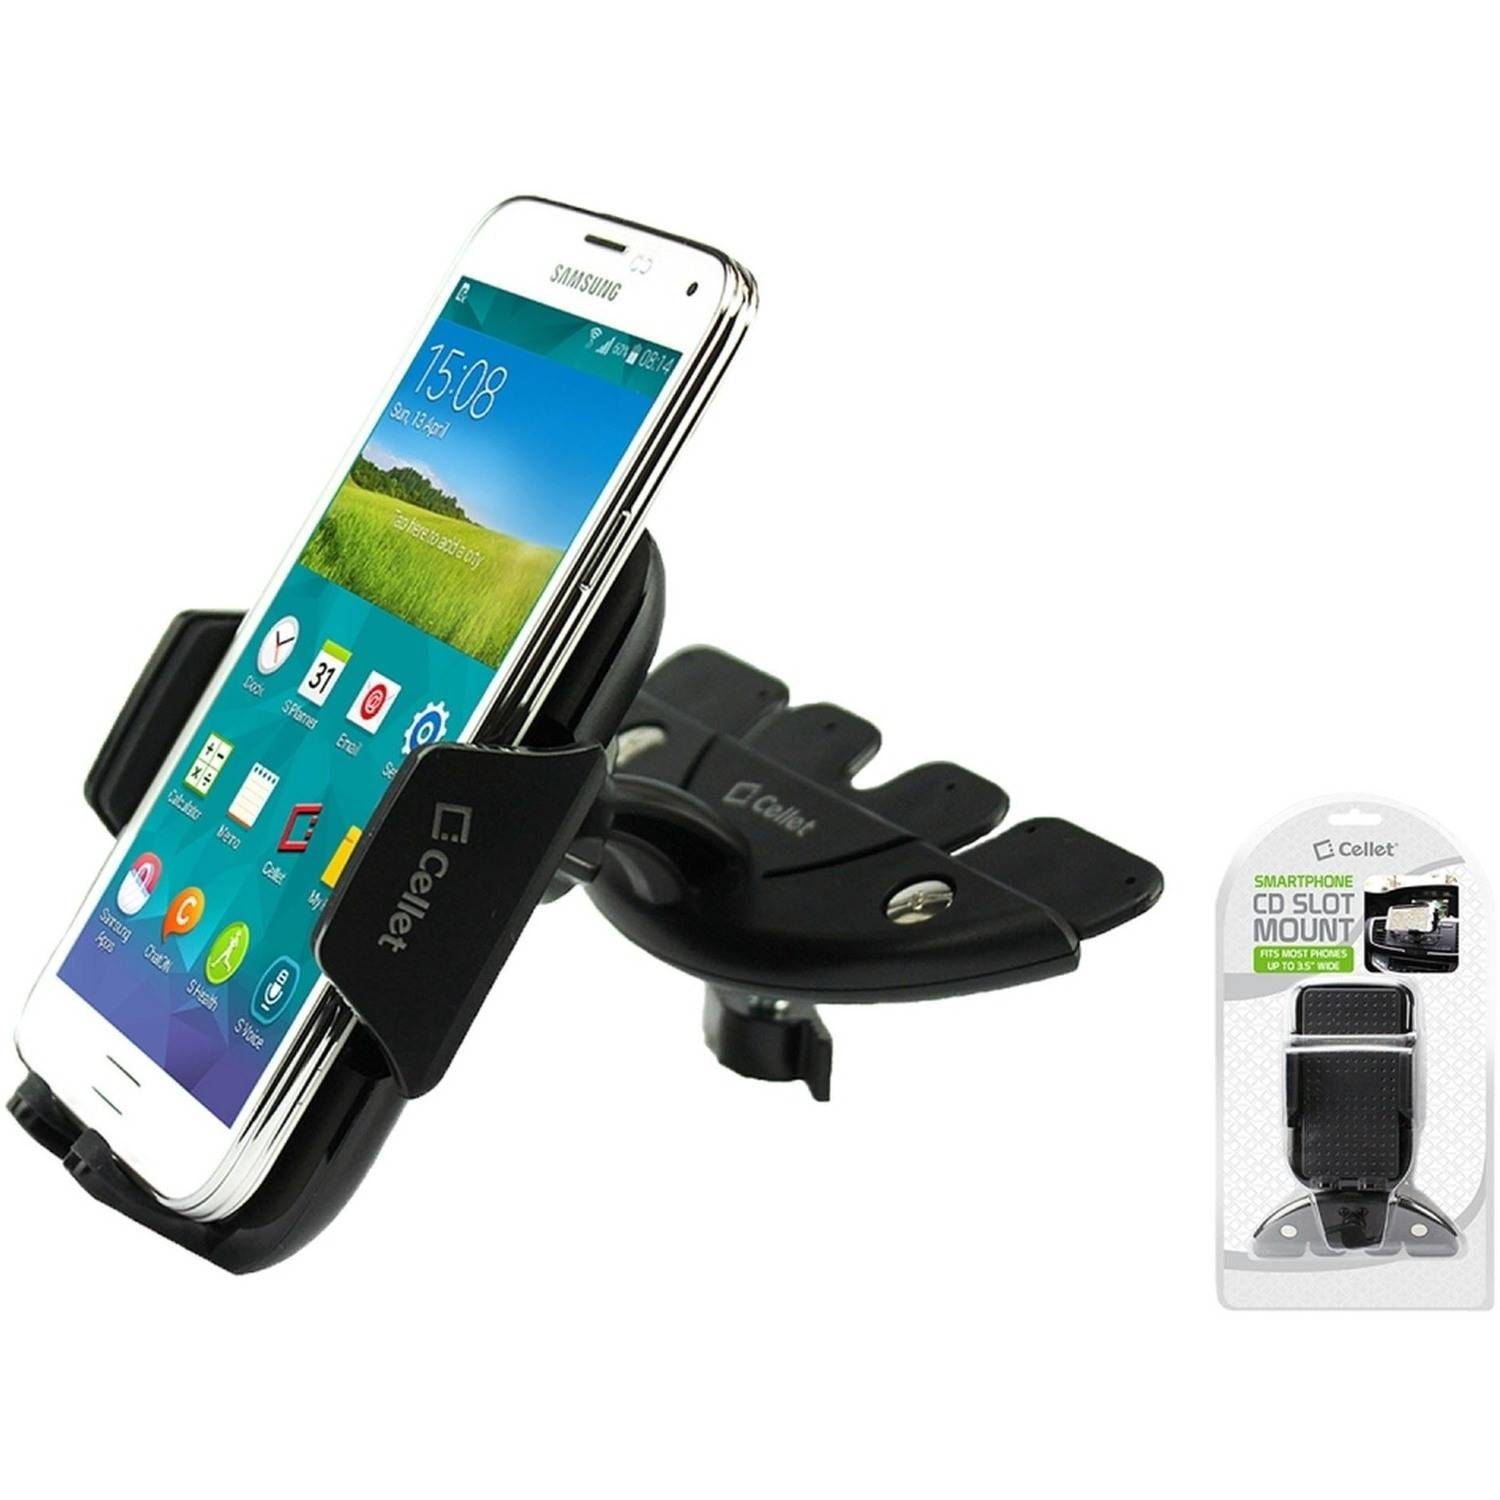 Cellet CD Slot Phone Holder Mount, Stable and Durable CD Slot Mount Holder with 360 Degree Rotational Cradle and Tightening Knob for Smartphones, iPods, GPS and Other Devices Up to 3.5 Inches Wide